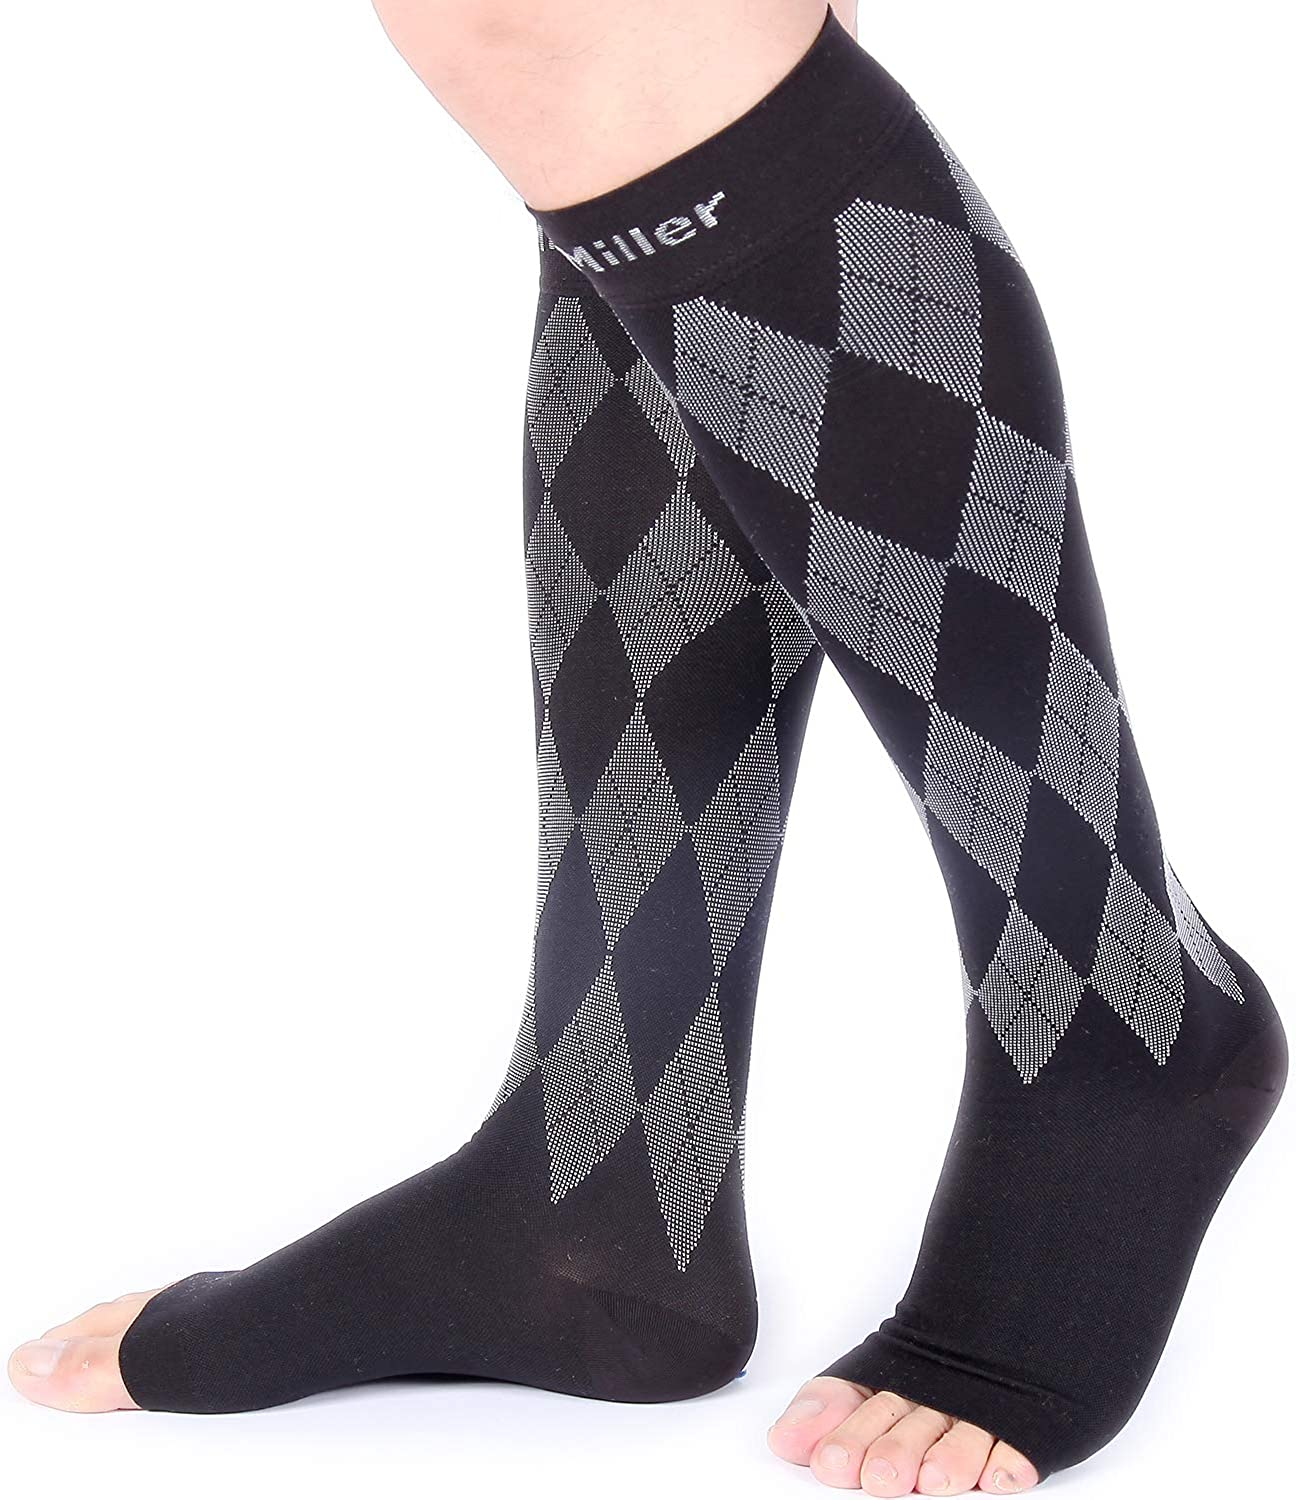 Doc Miller Open Toe Compression Socks 1 Pair 20-30mmHg